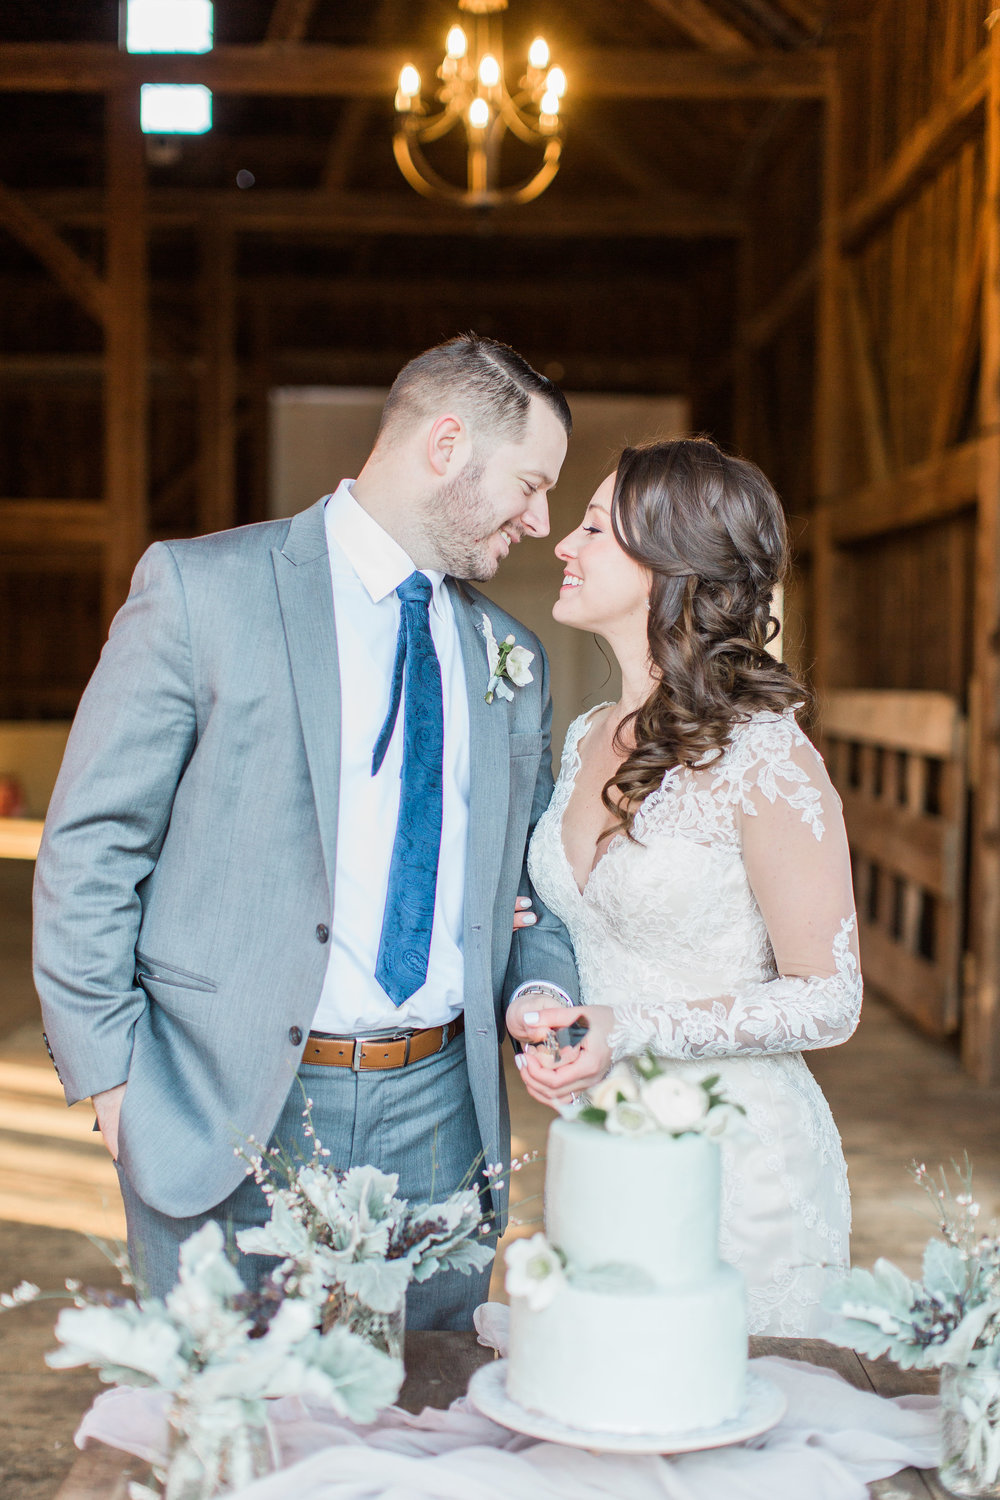 Cunningham_Farm_Winter_Styled_Wedding_Shoot_Meredith_Jane_Photography-179.jpg